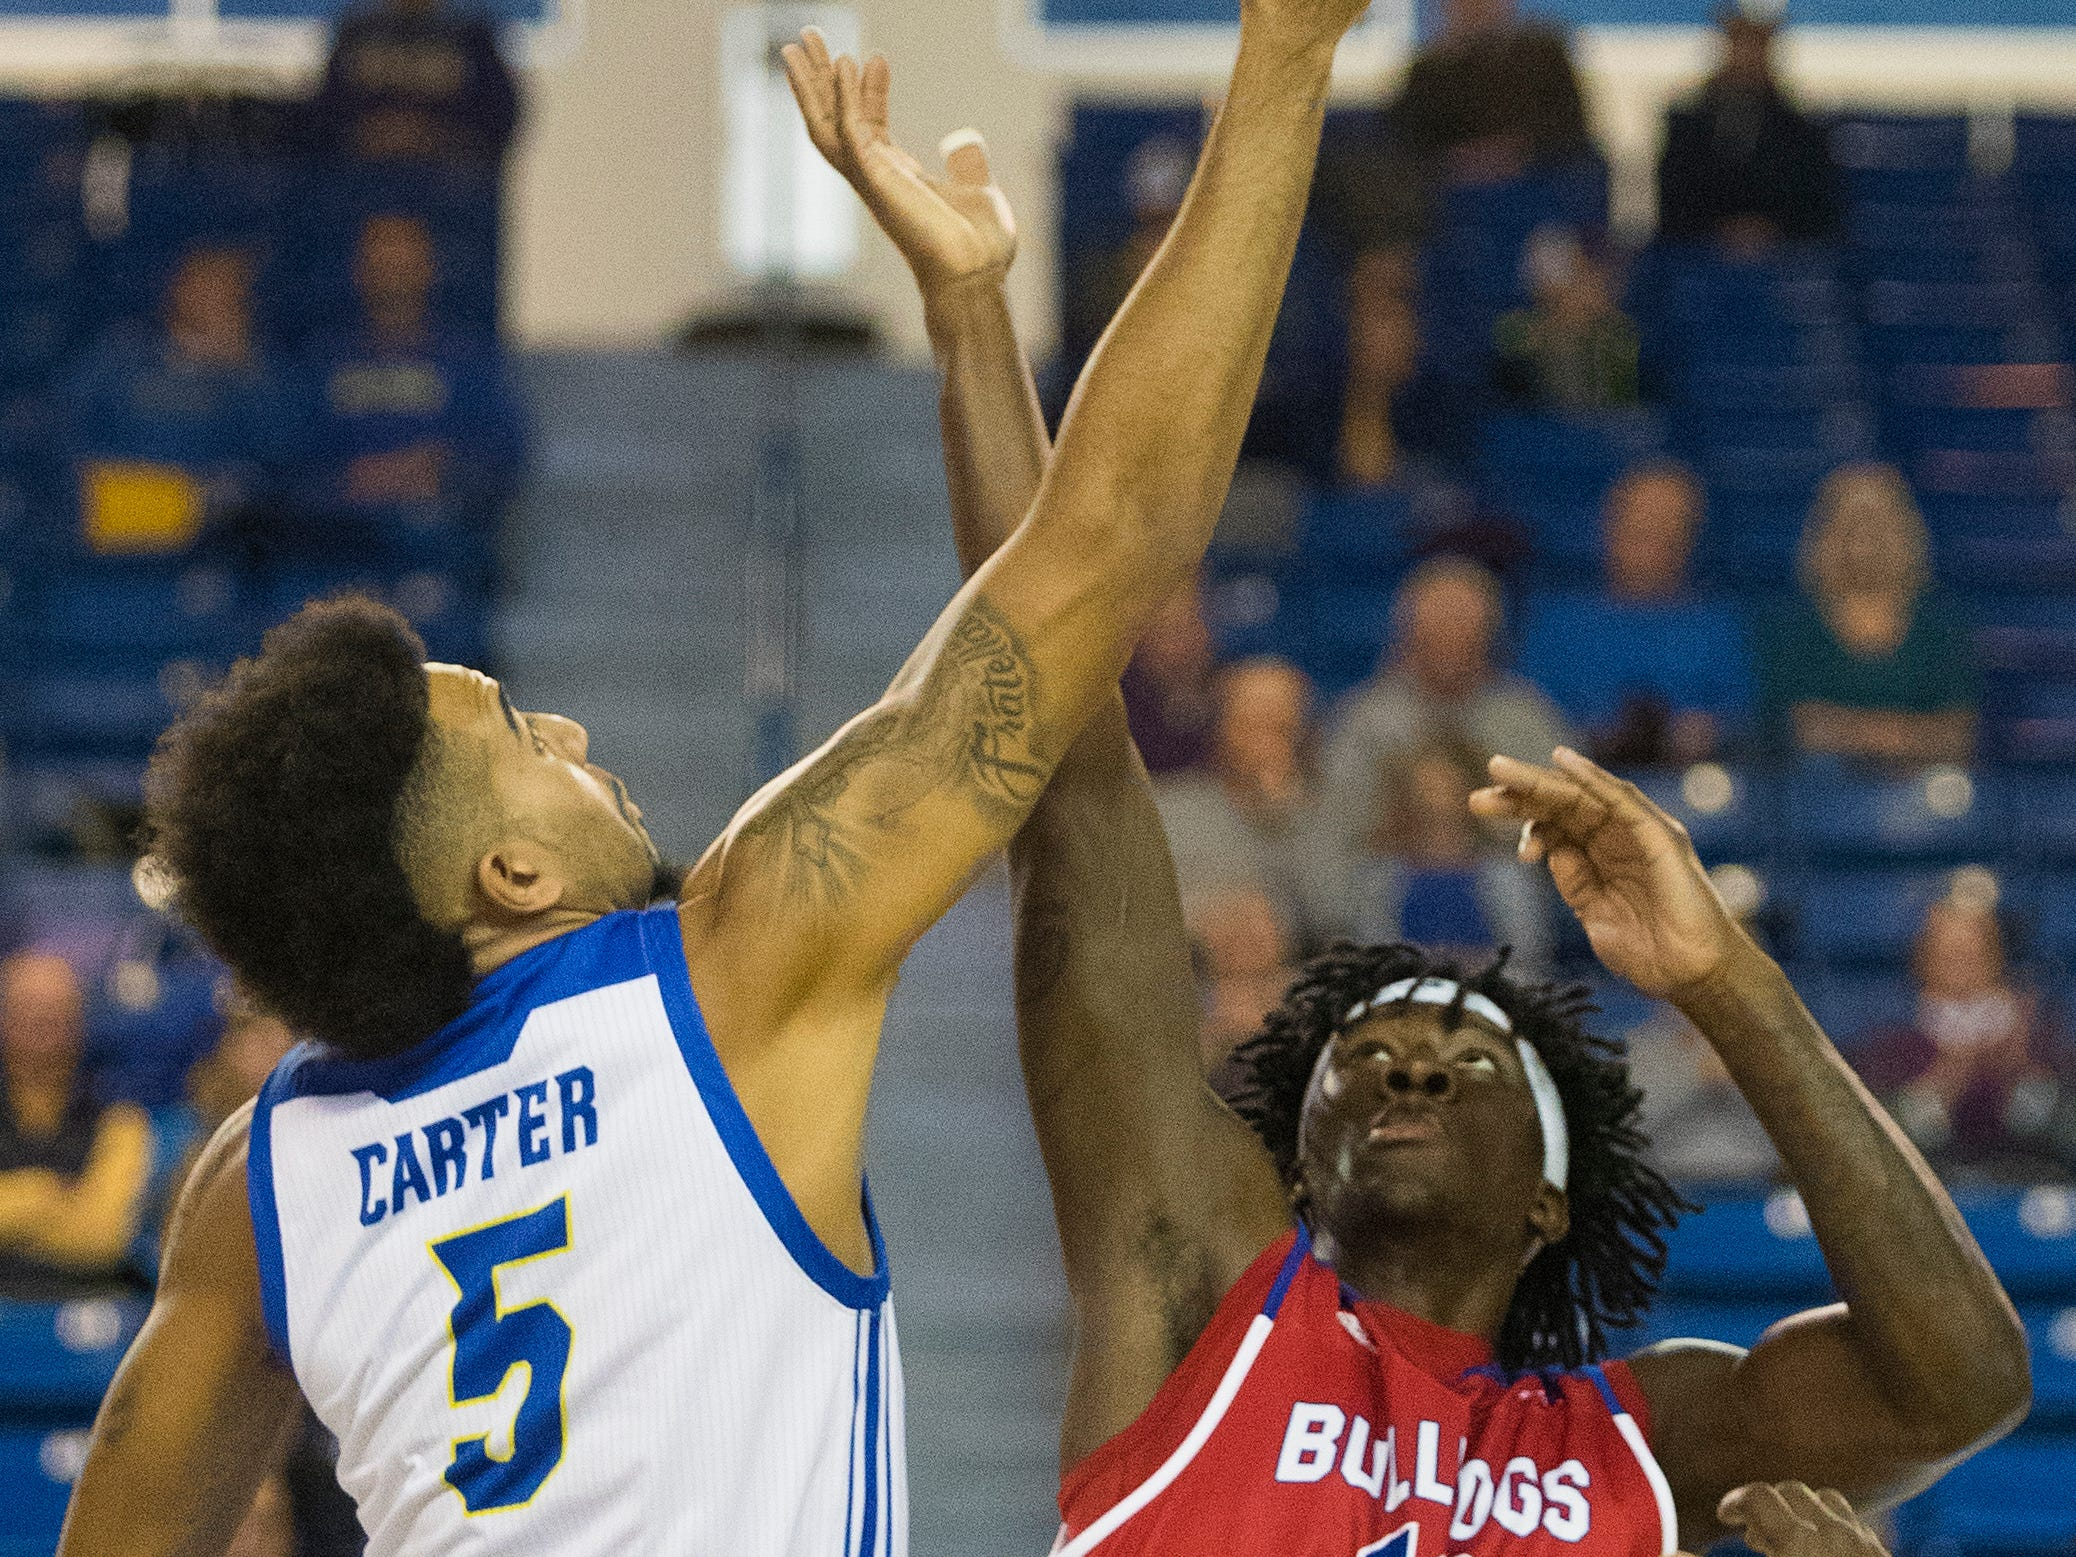 Delaware's Eric Carter (5) reaches the tipoff first against Louisiana Tech's Anthony Duriji (10) Monday at the Bob Carpenter Center. Delaware defeated Louisiana Tech 75-71.